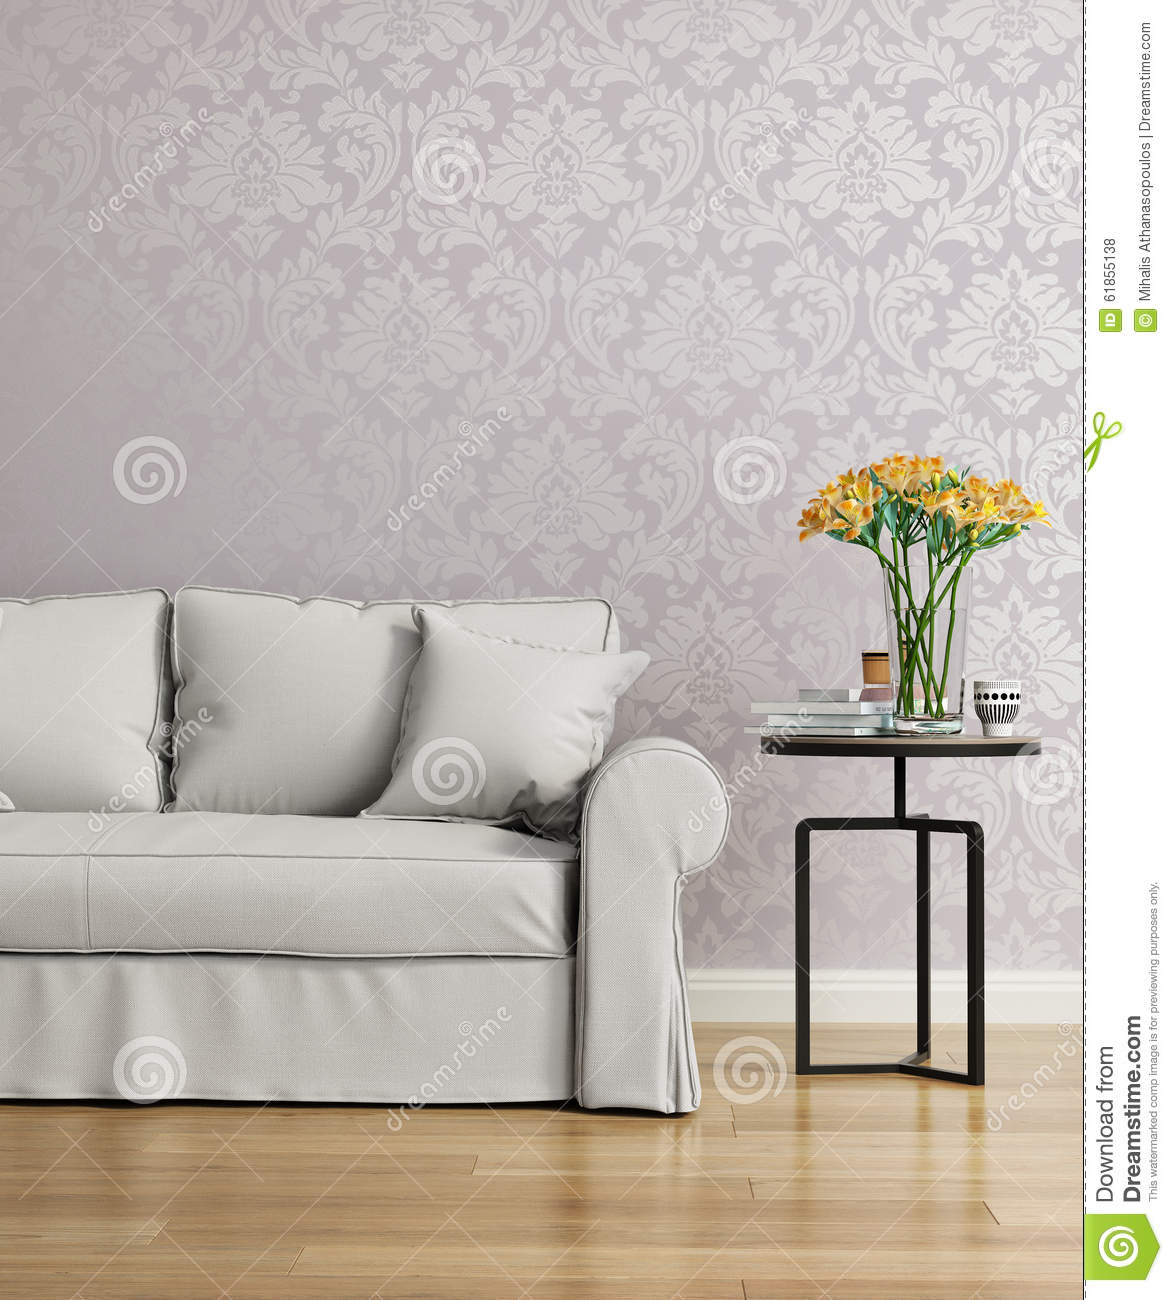 grey sofa with a purple damask victorian wallpaper stock photo image 61855138. Black Bedroom Furniture Sets. Home Design Ideas